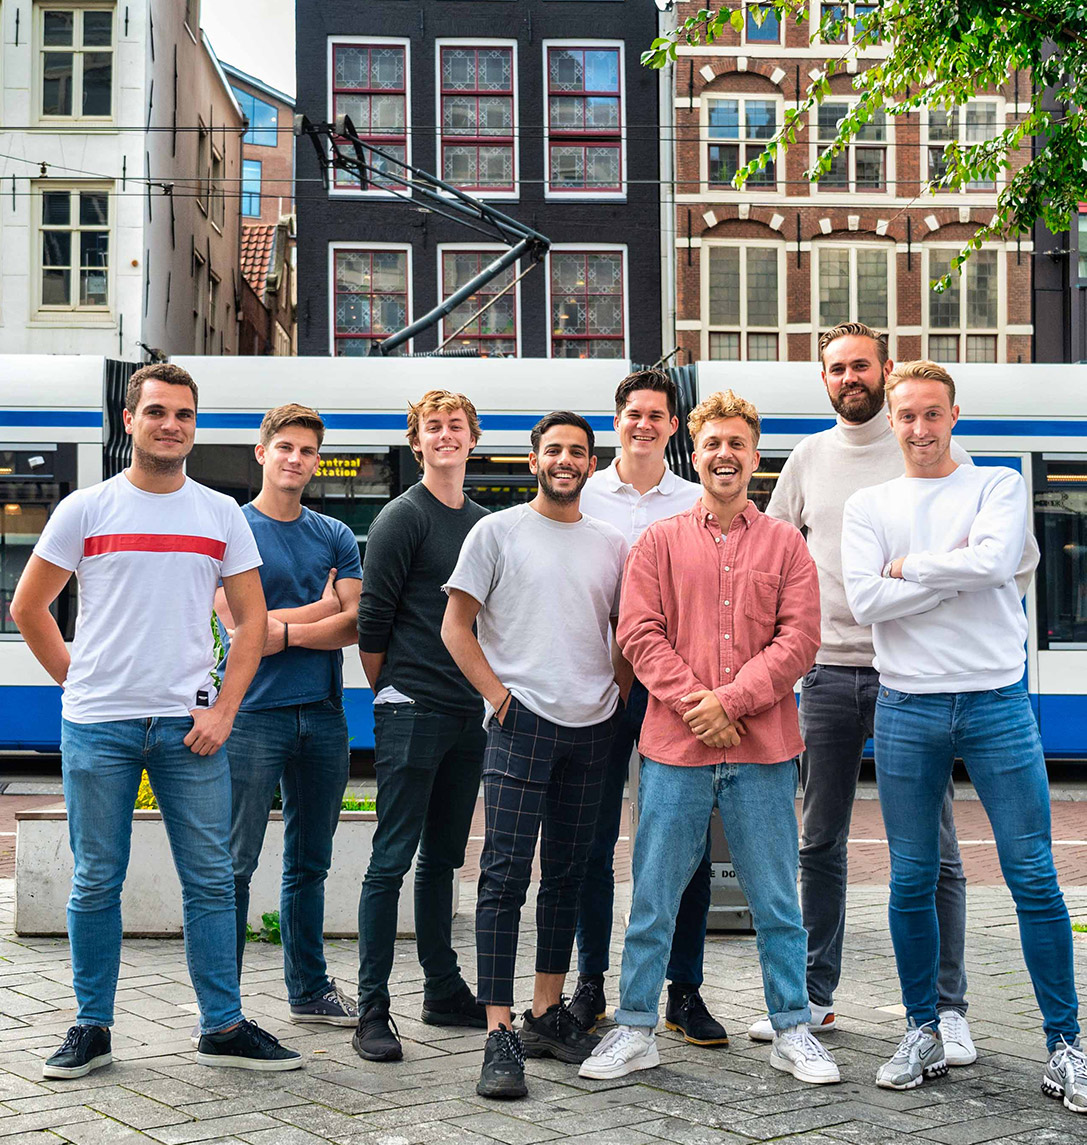 DIQQ team standing in front of a tram in Amsterdam